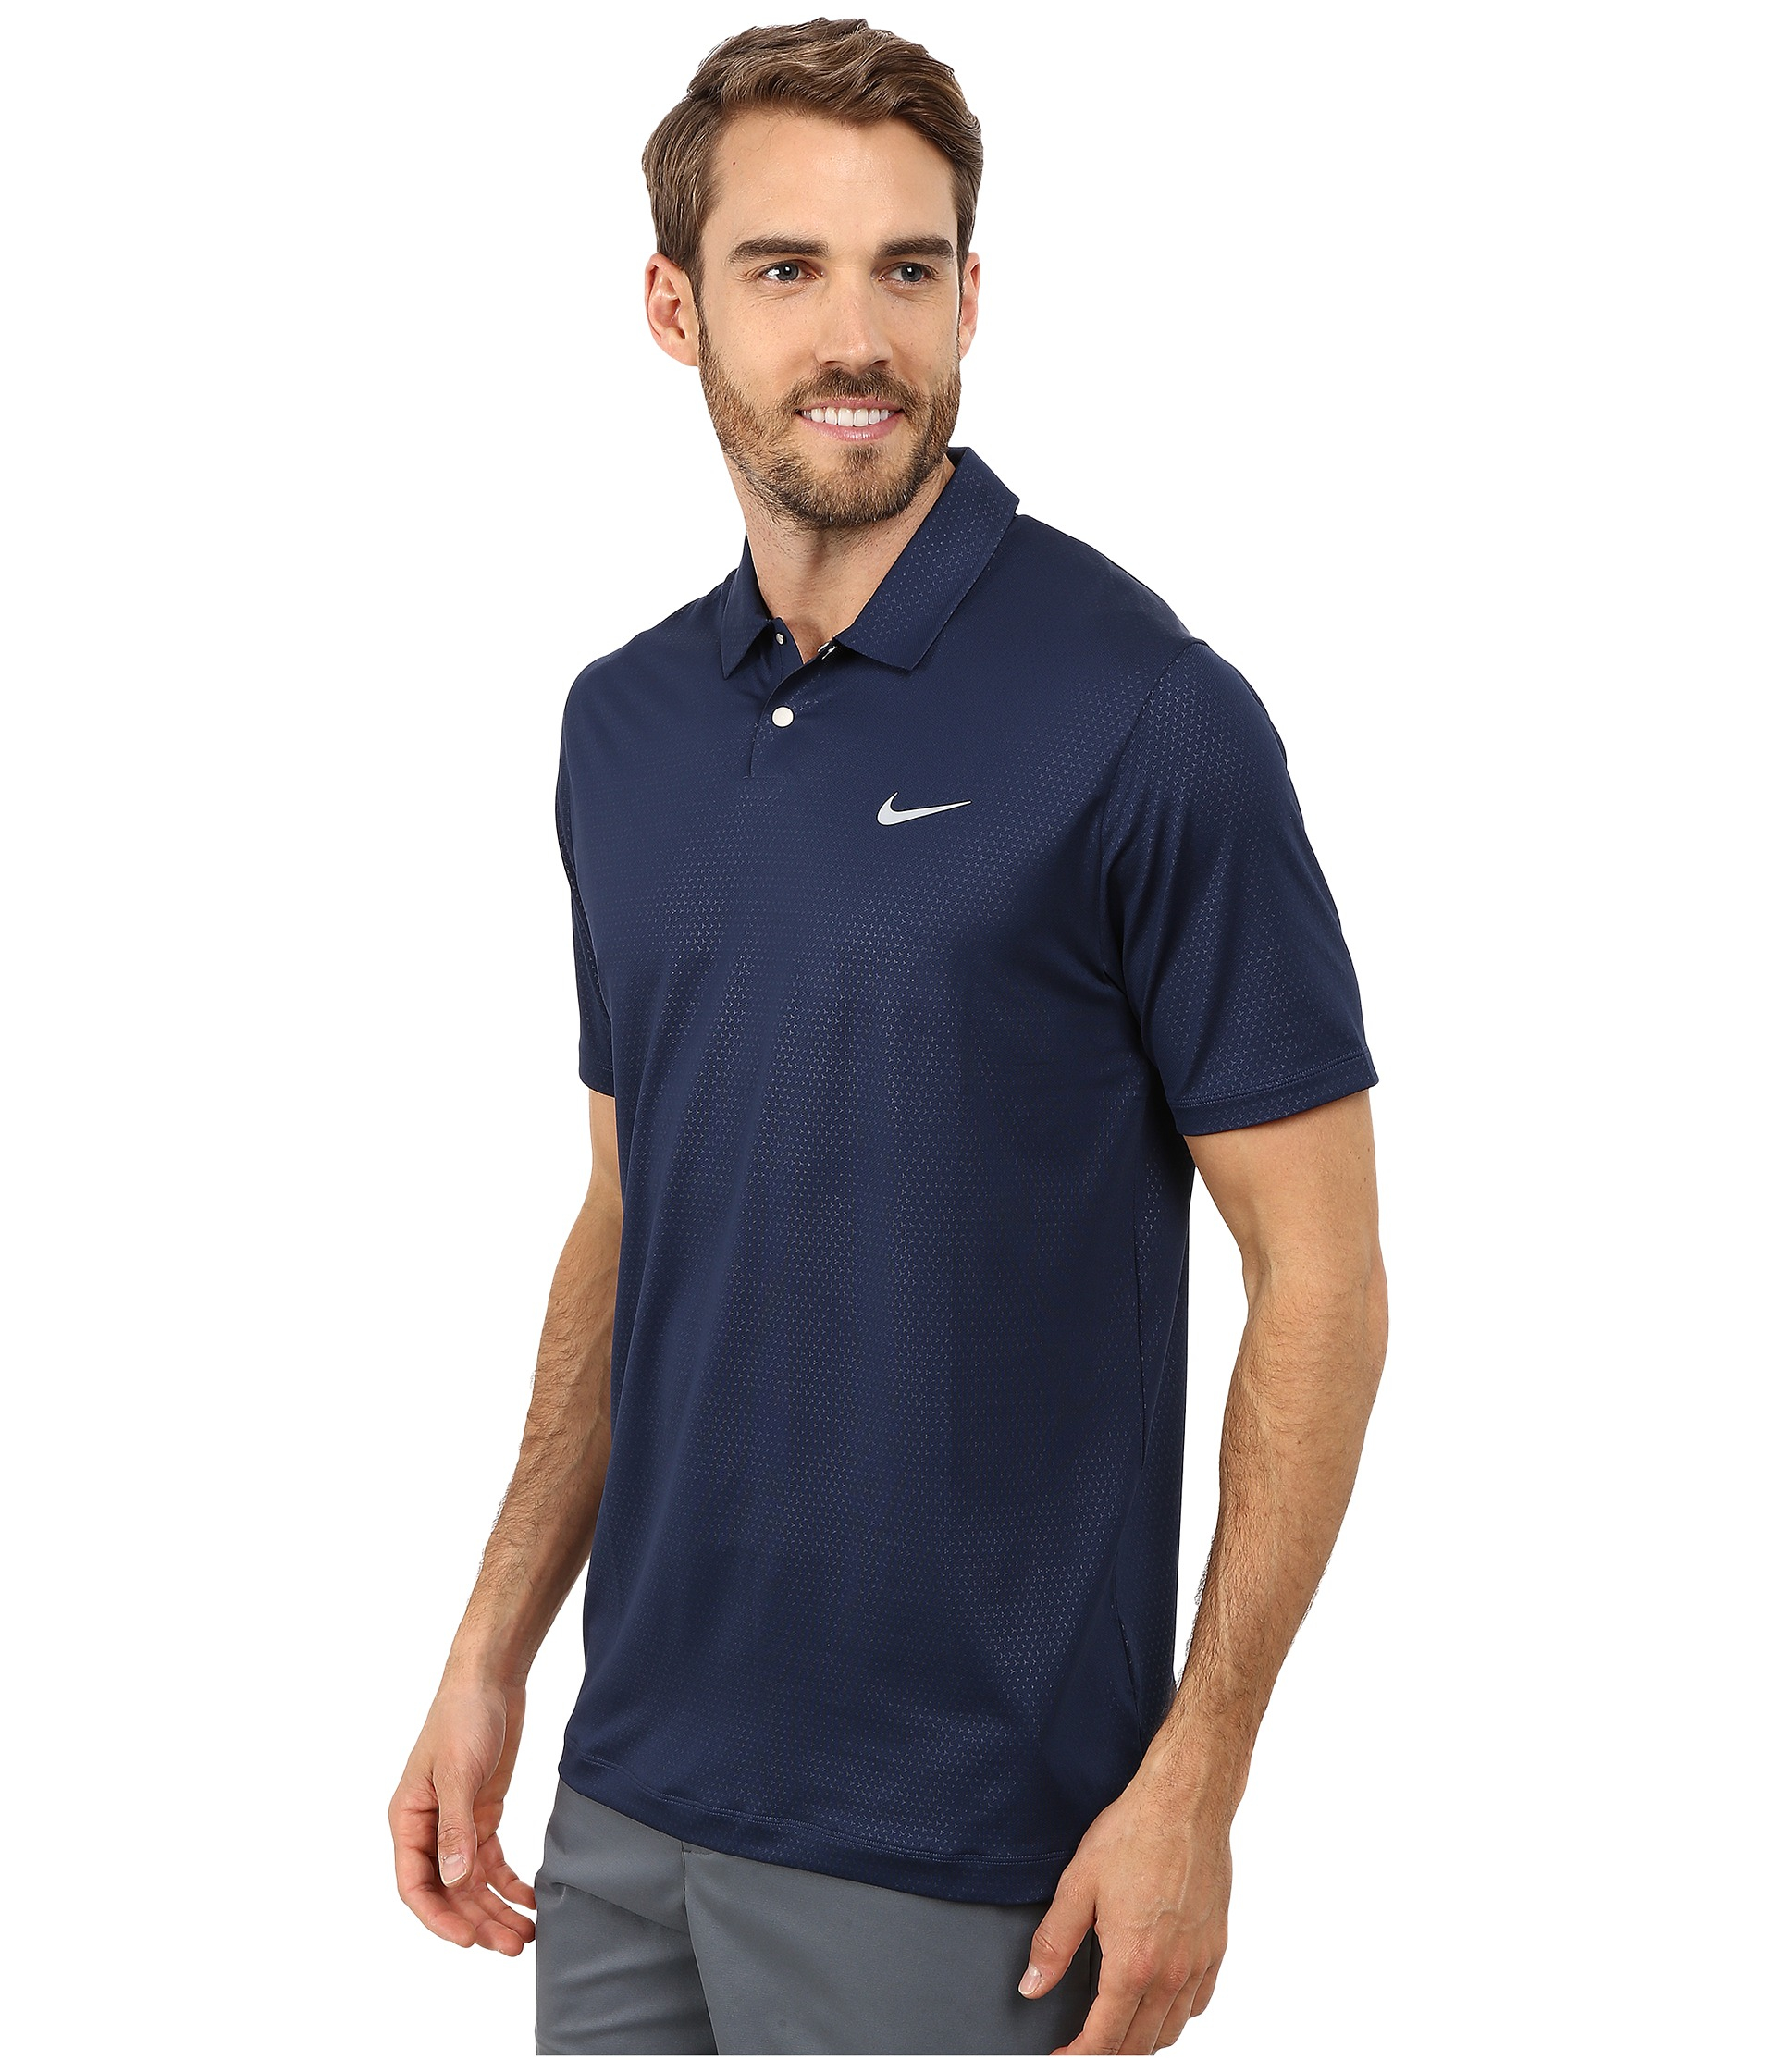 Navy Blue Nike Polo Shirts - Cotswold Hire 88fb3d706